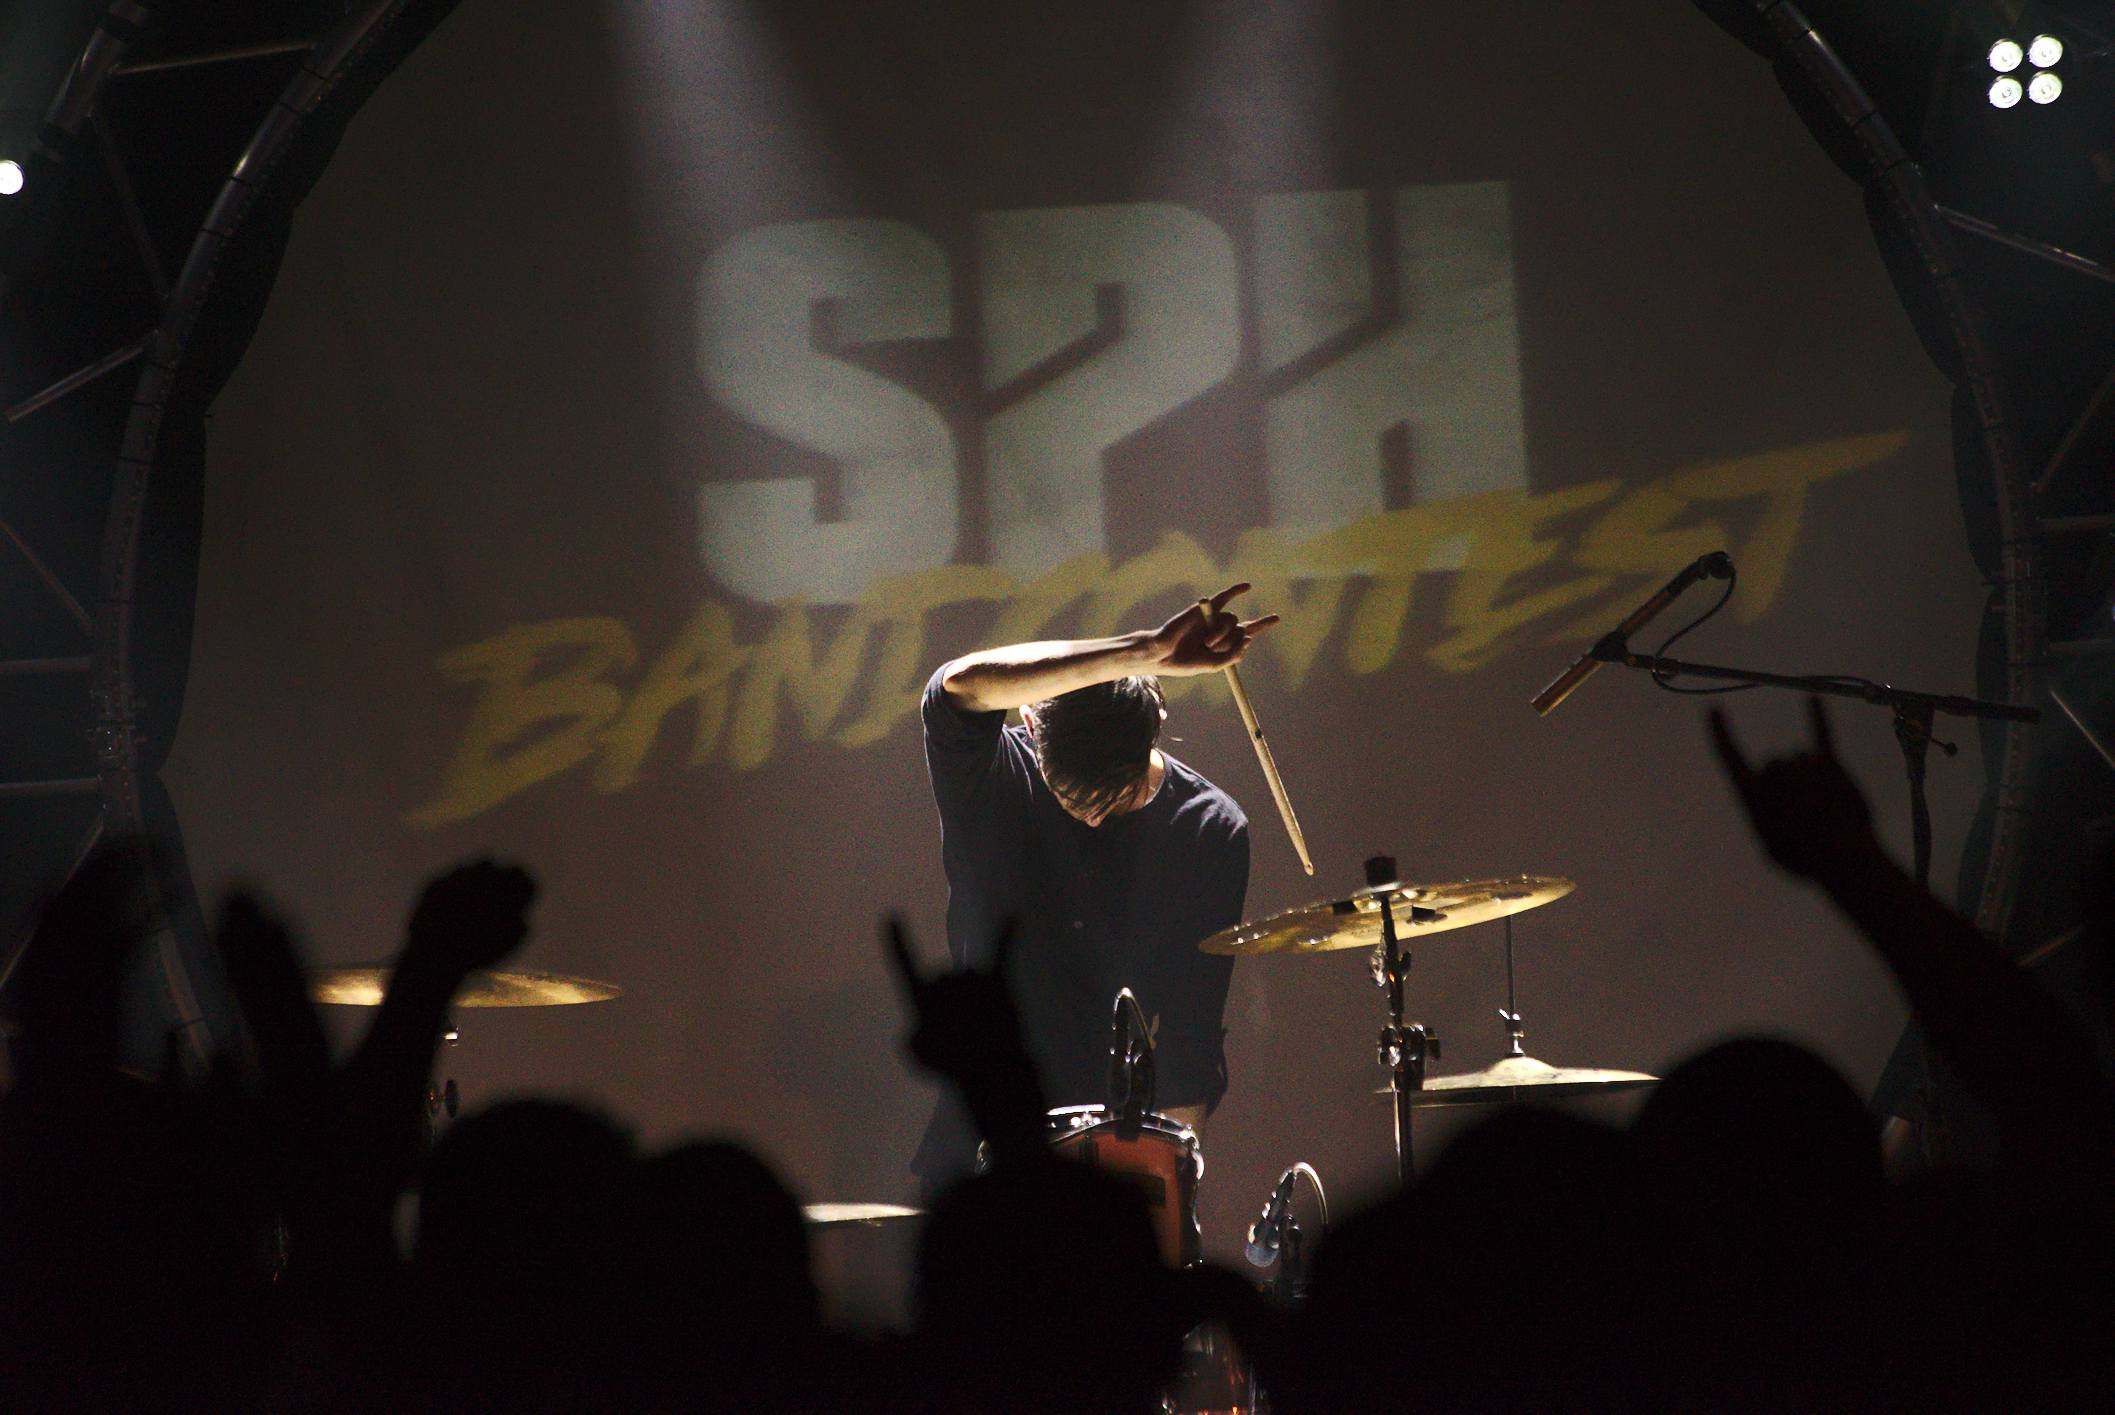 The drummer, finishing his solo with style